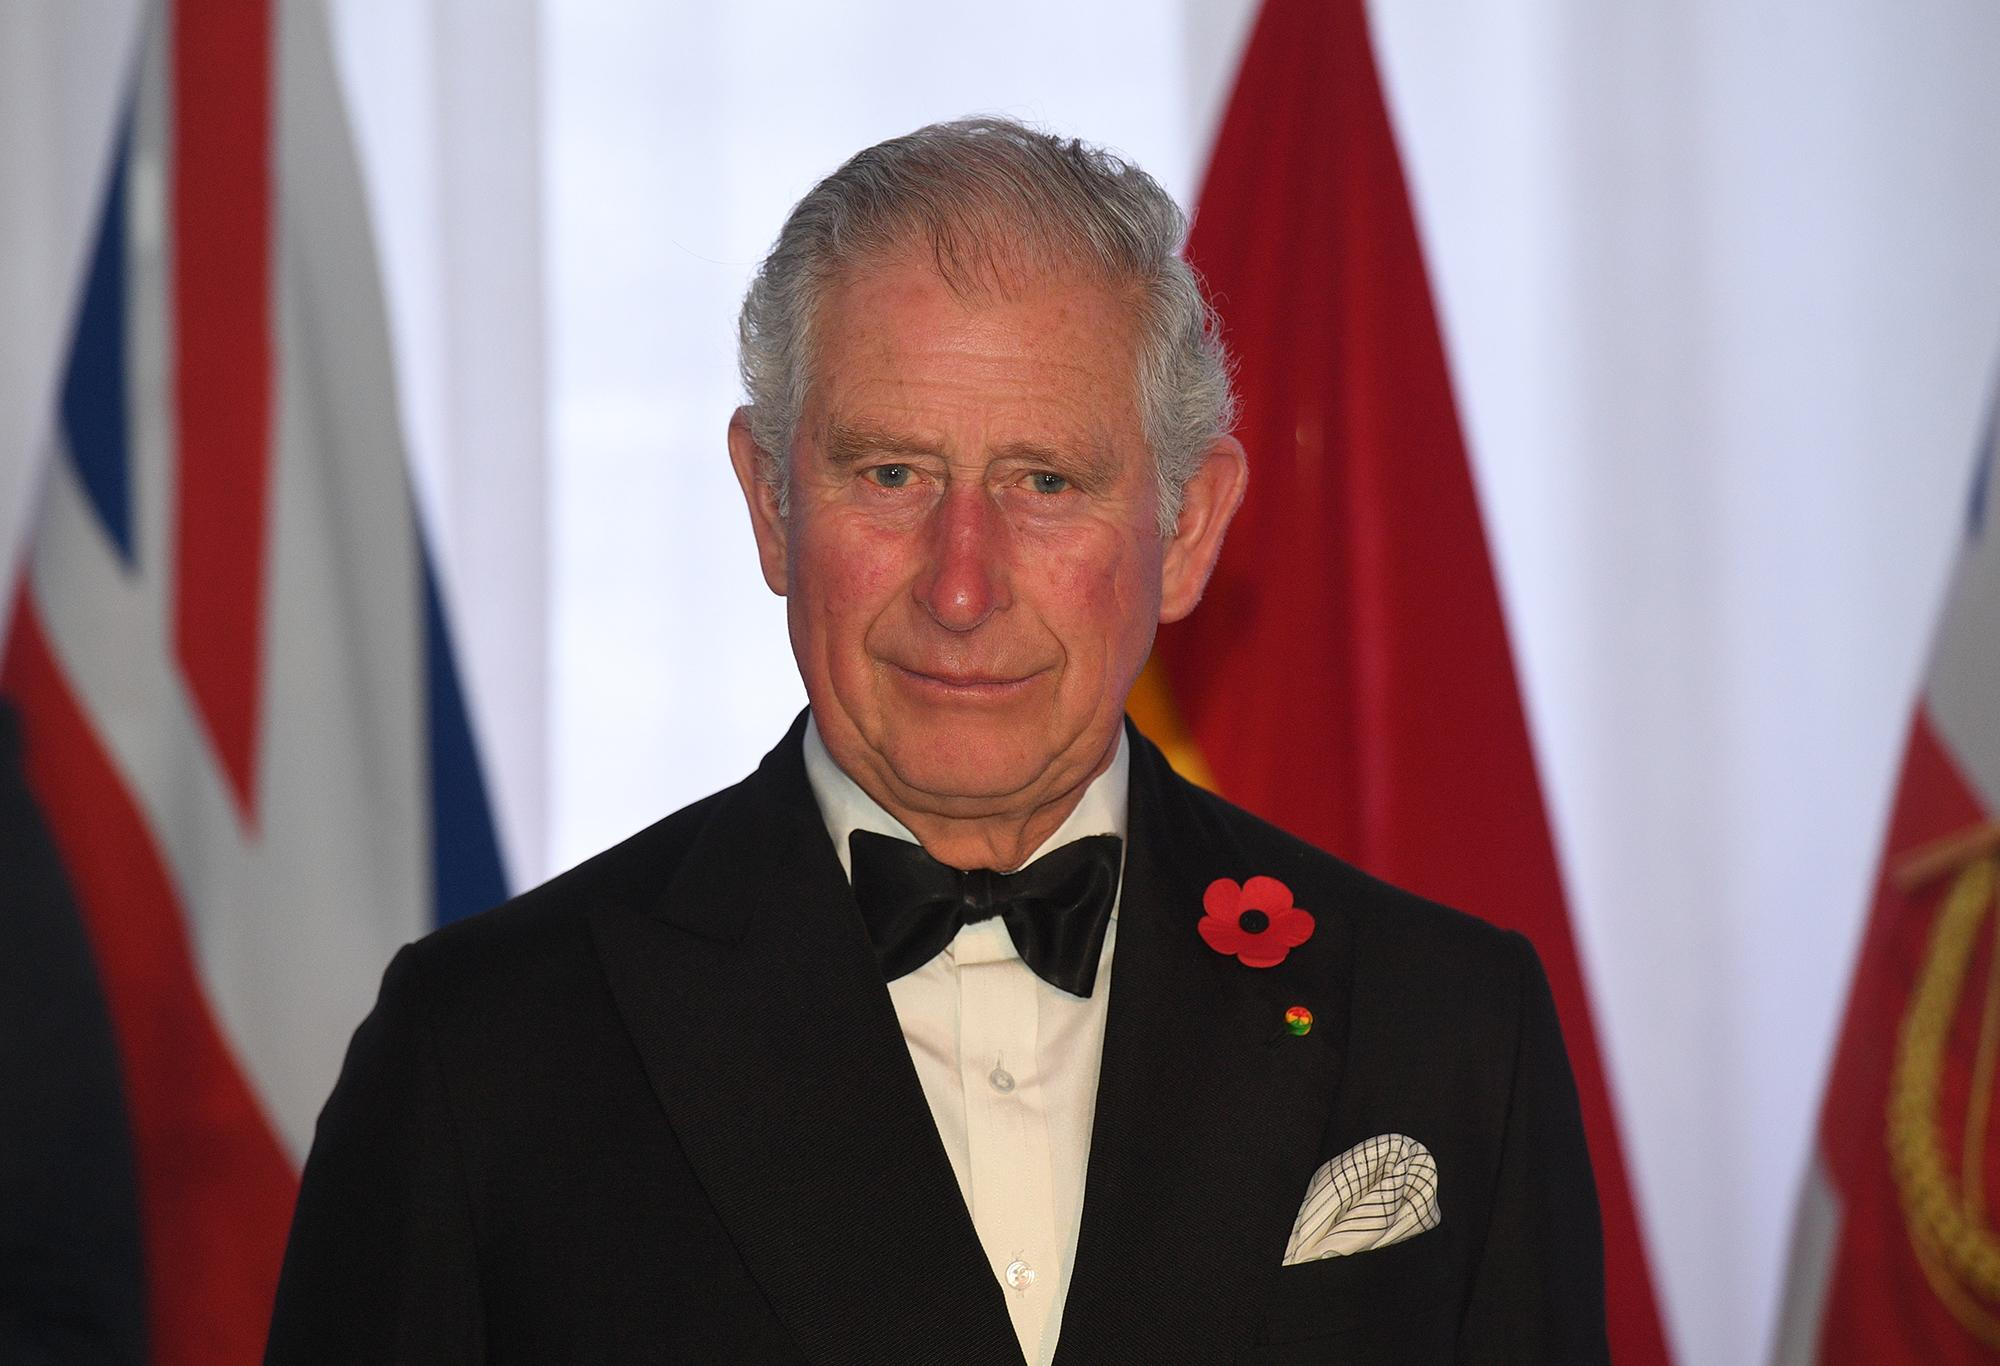 Prince Charles Drives a Luxury Car That Runs on White Wine and It Smells Delicious